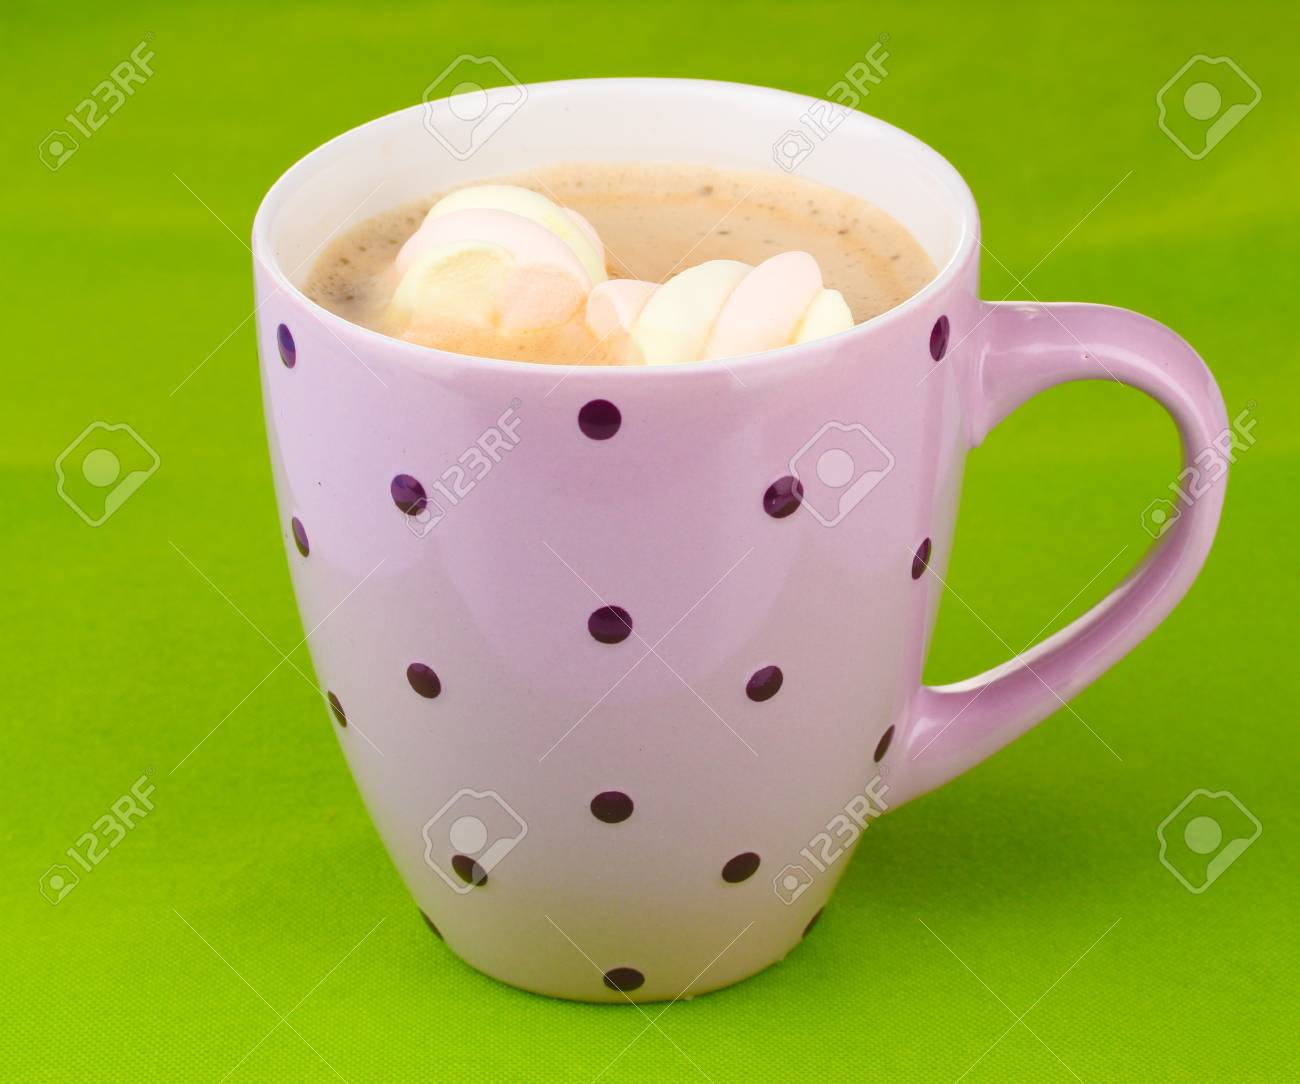 Cup of cappucino with marshmallows on green background Stock Photo - 12113168